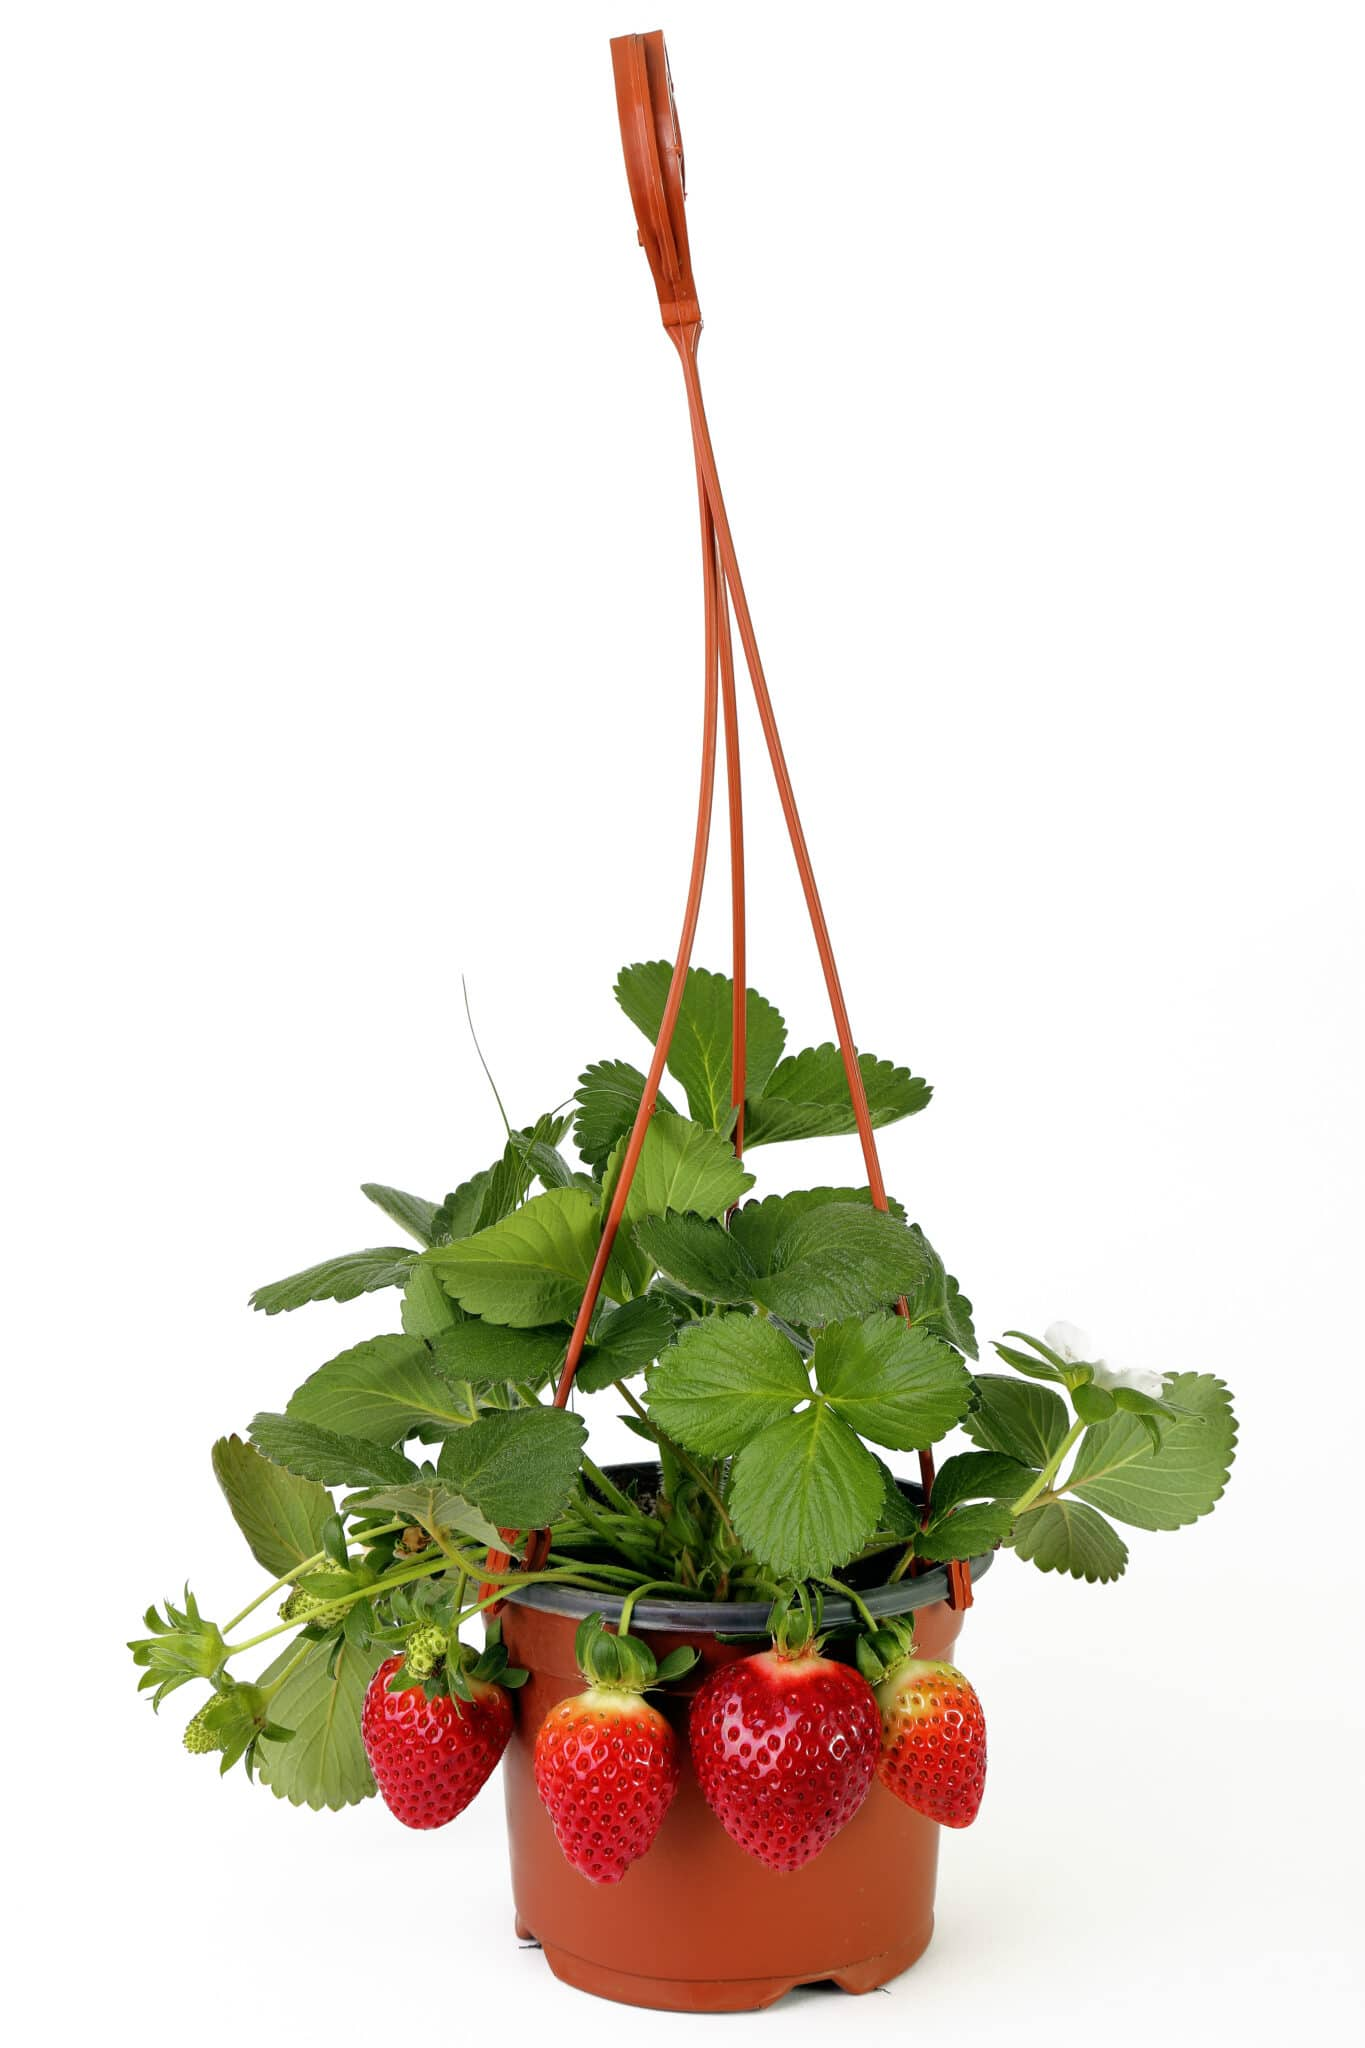 A small hanging basket filled with healthy green strawberry plants.  Fresh ripe strawberries are hanging over the side of the planter.